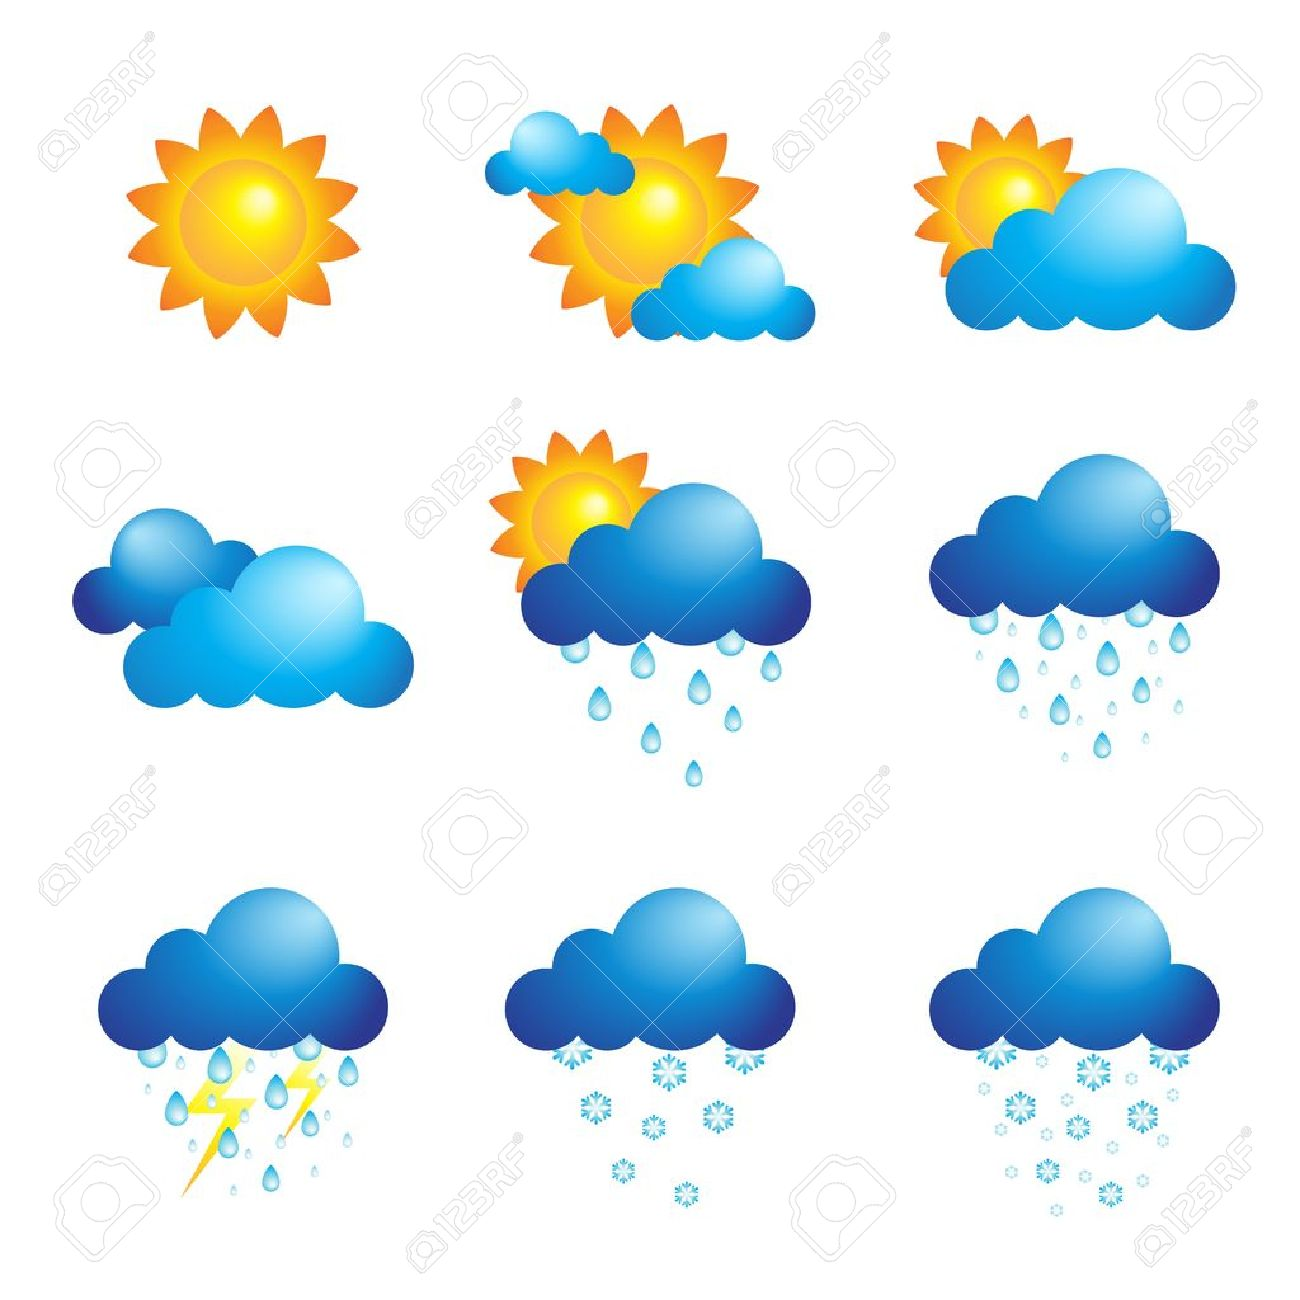 A Vector Illustration Of Different Weather Icons Royalty Free.